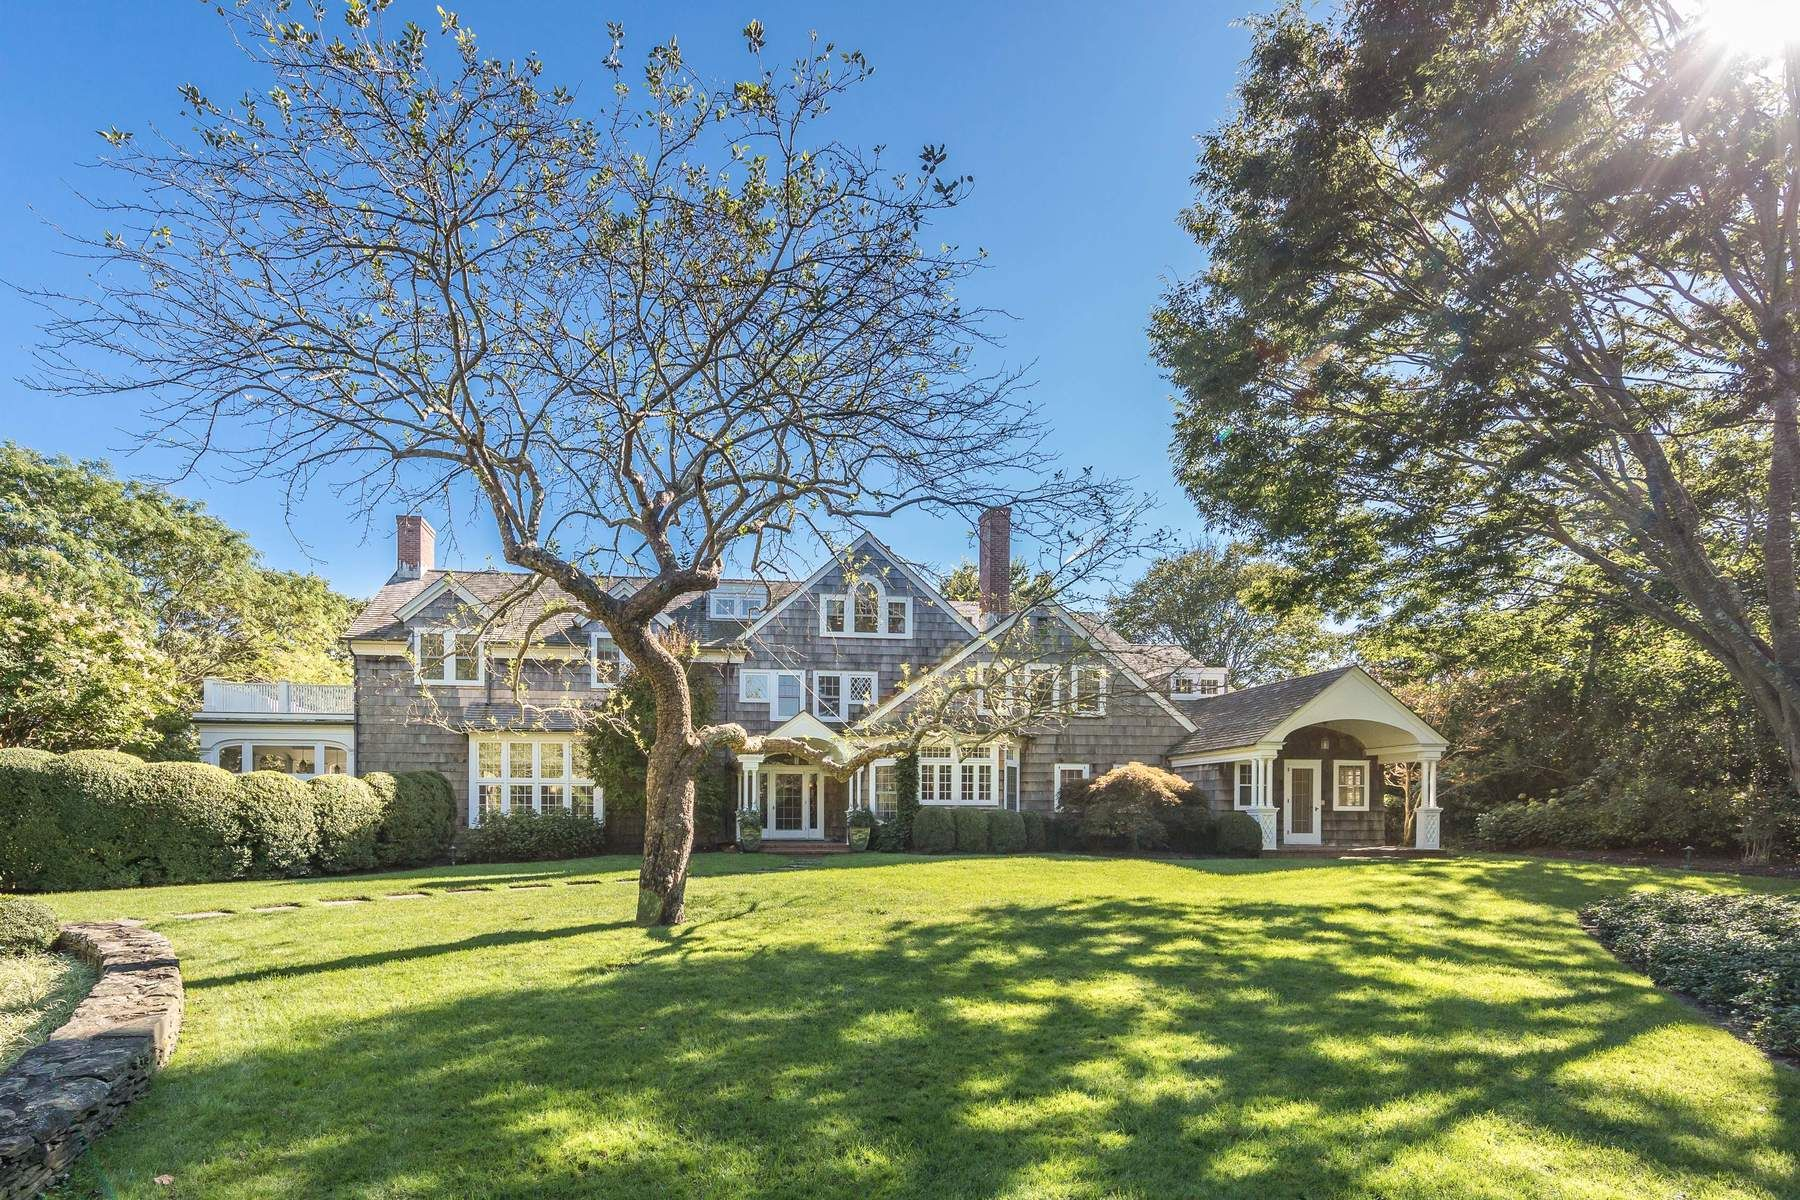 Single Family Home for Sale at Prestigious Georgica Estate Compound 253 Cove Hollow Road, East Hampton, New York, 11937 United States